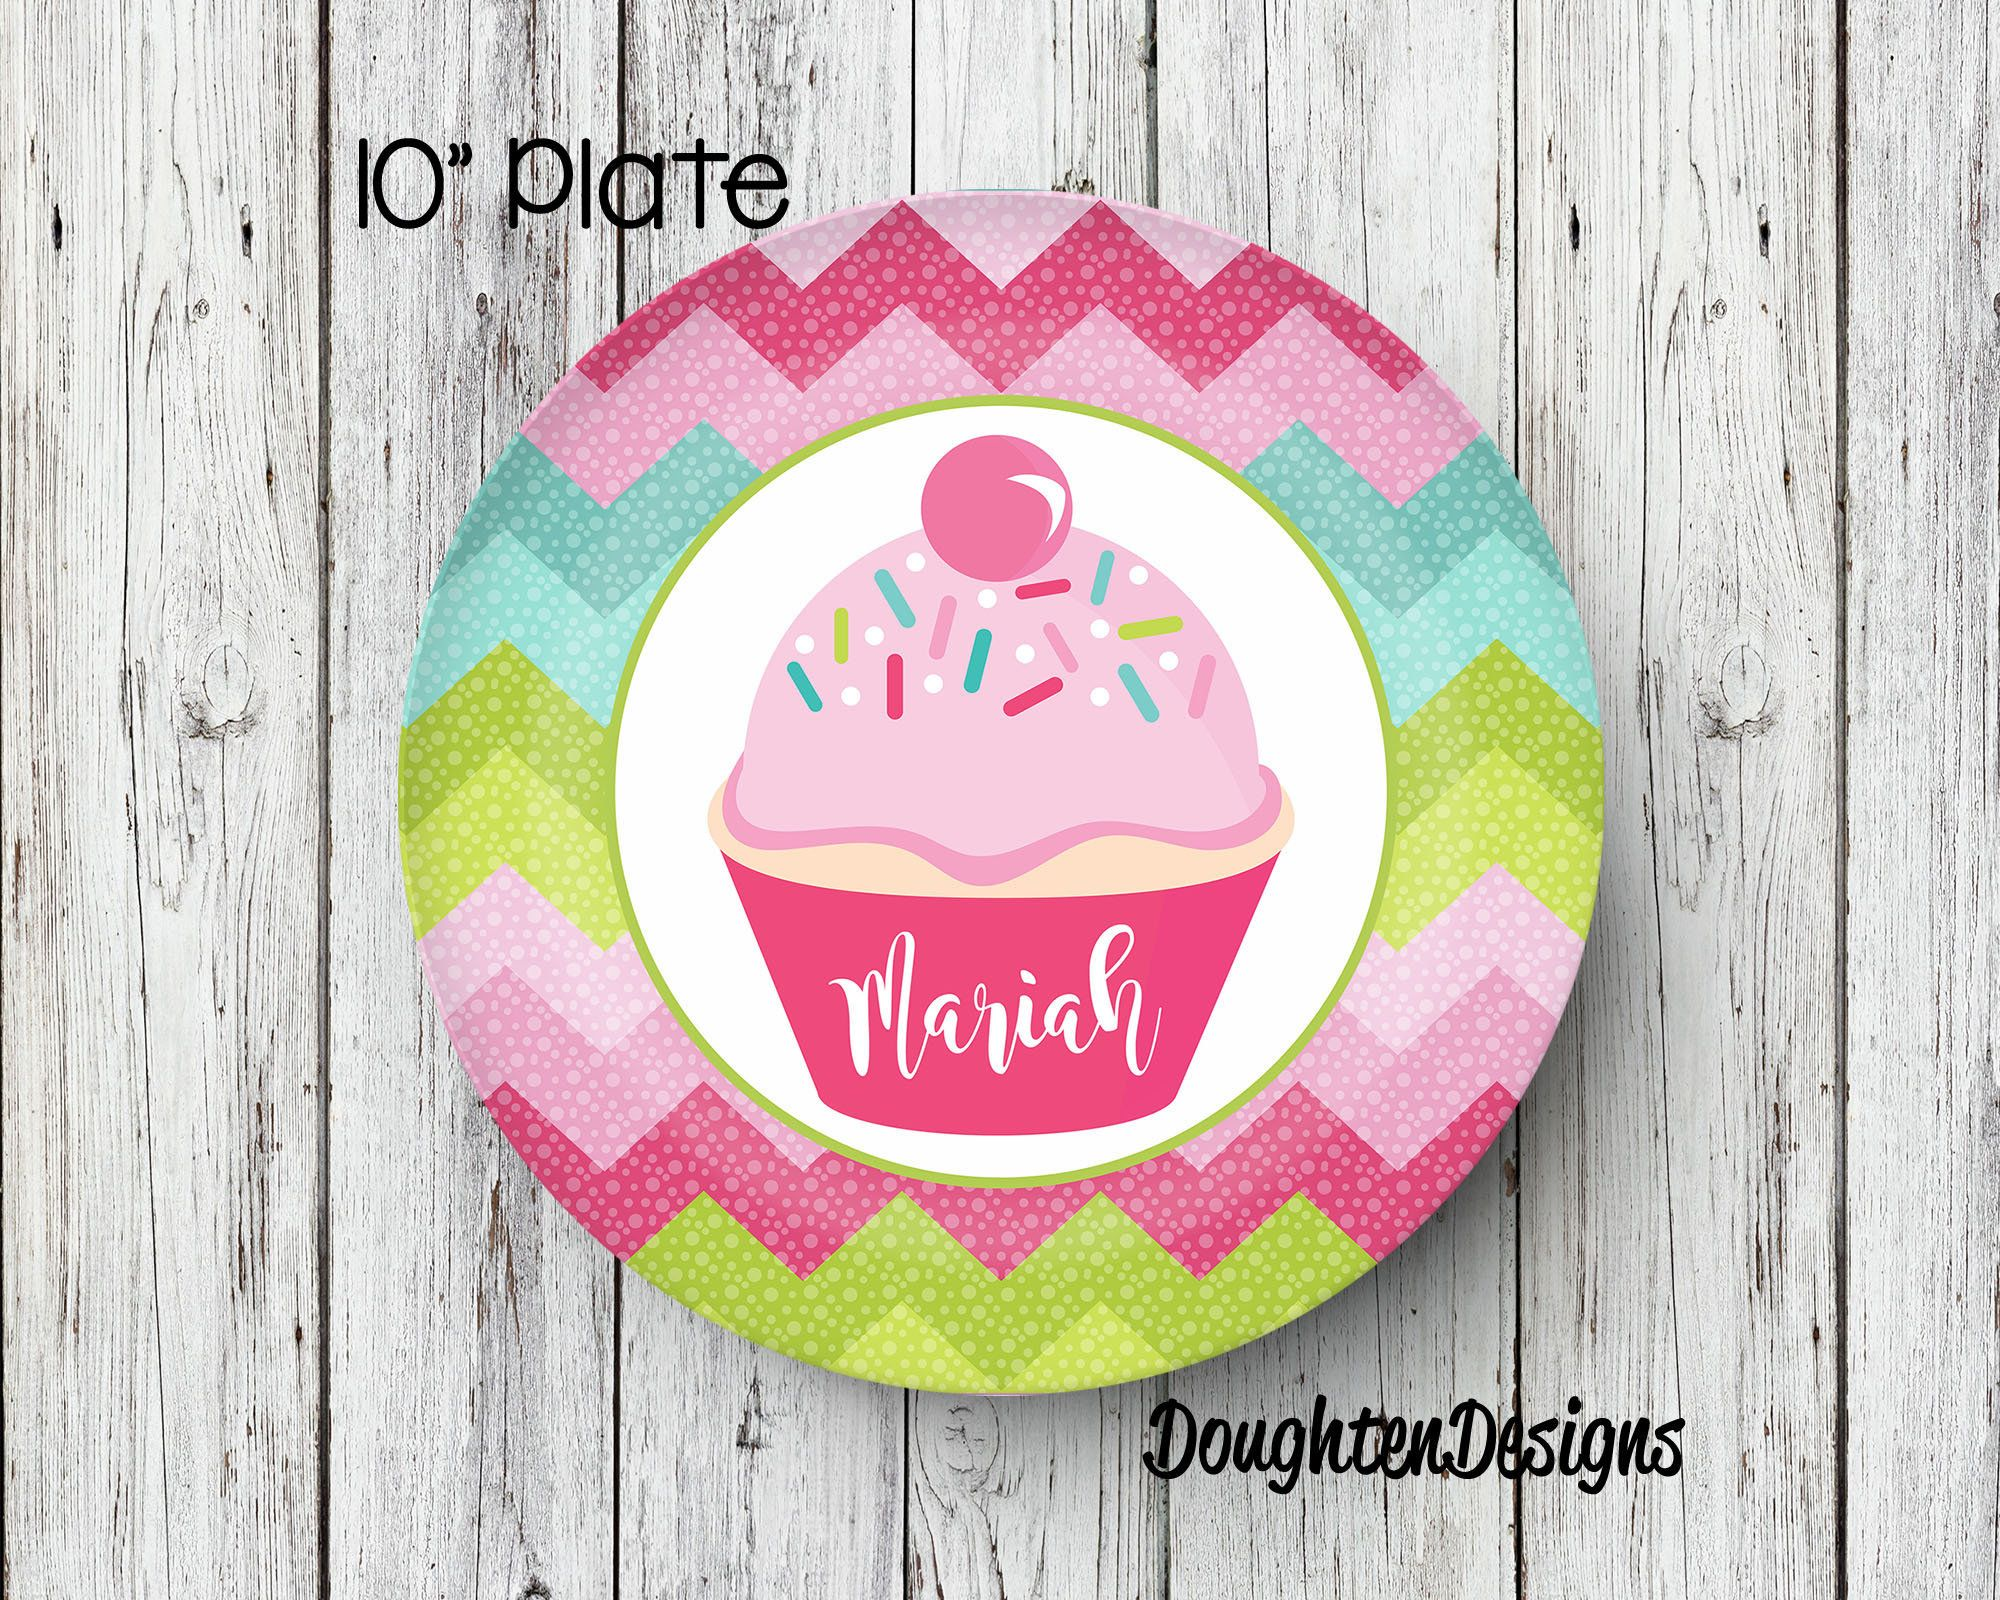 Cupcake Plate Birthday Plate Personalized Melamine Plate Personalized Birthday Plate Girl Plate  sc 1 st  Pinterest & Cupcake Plate Birthday Plate Personalized Melamine Plate ...